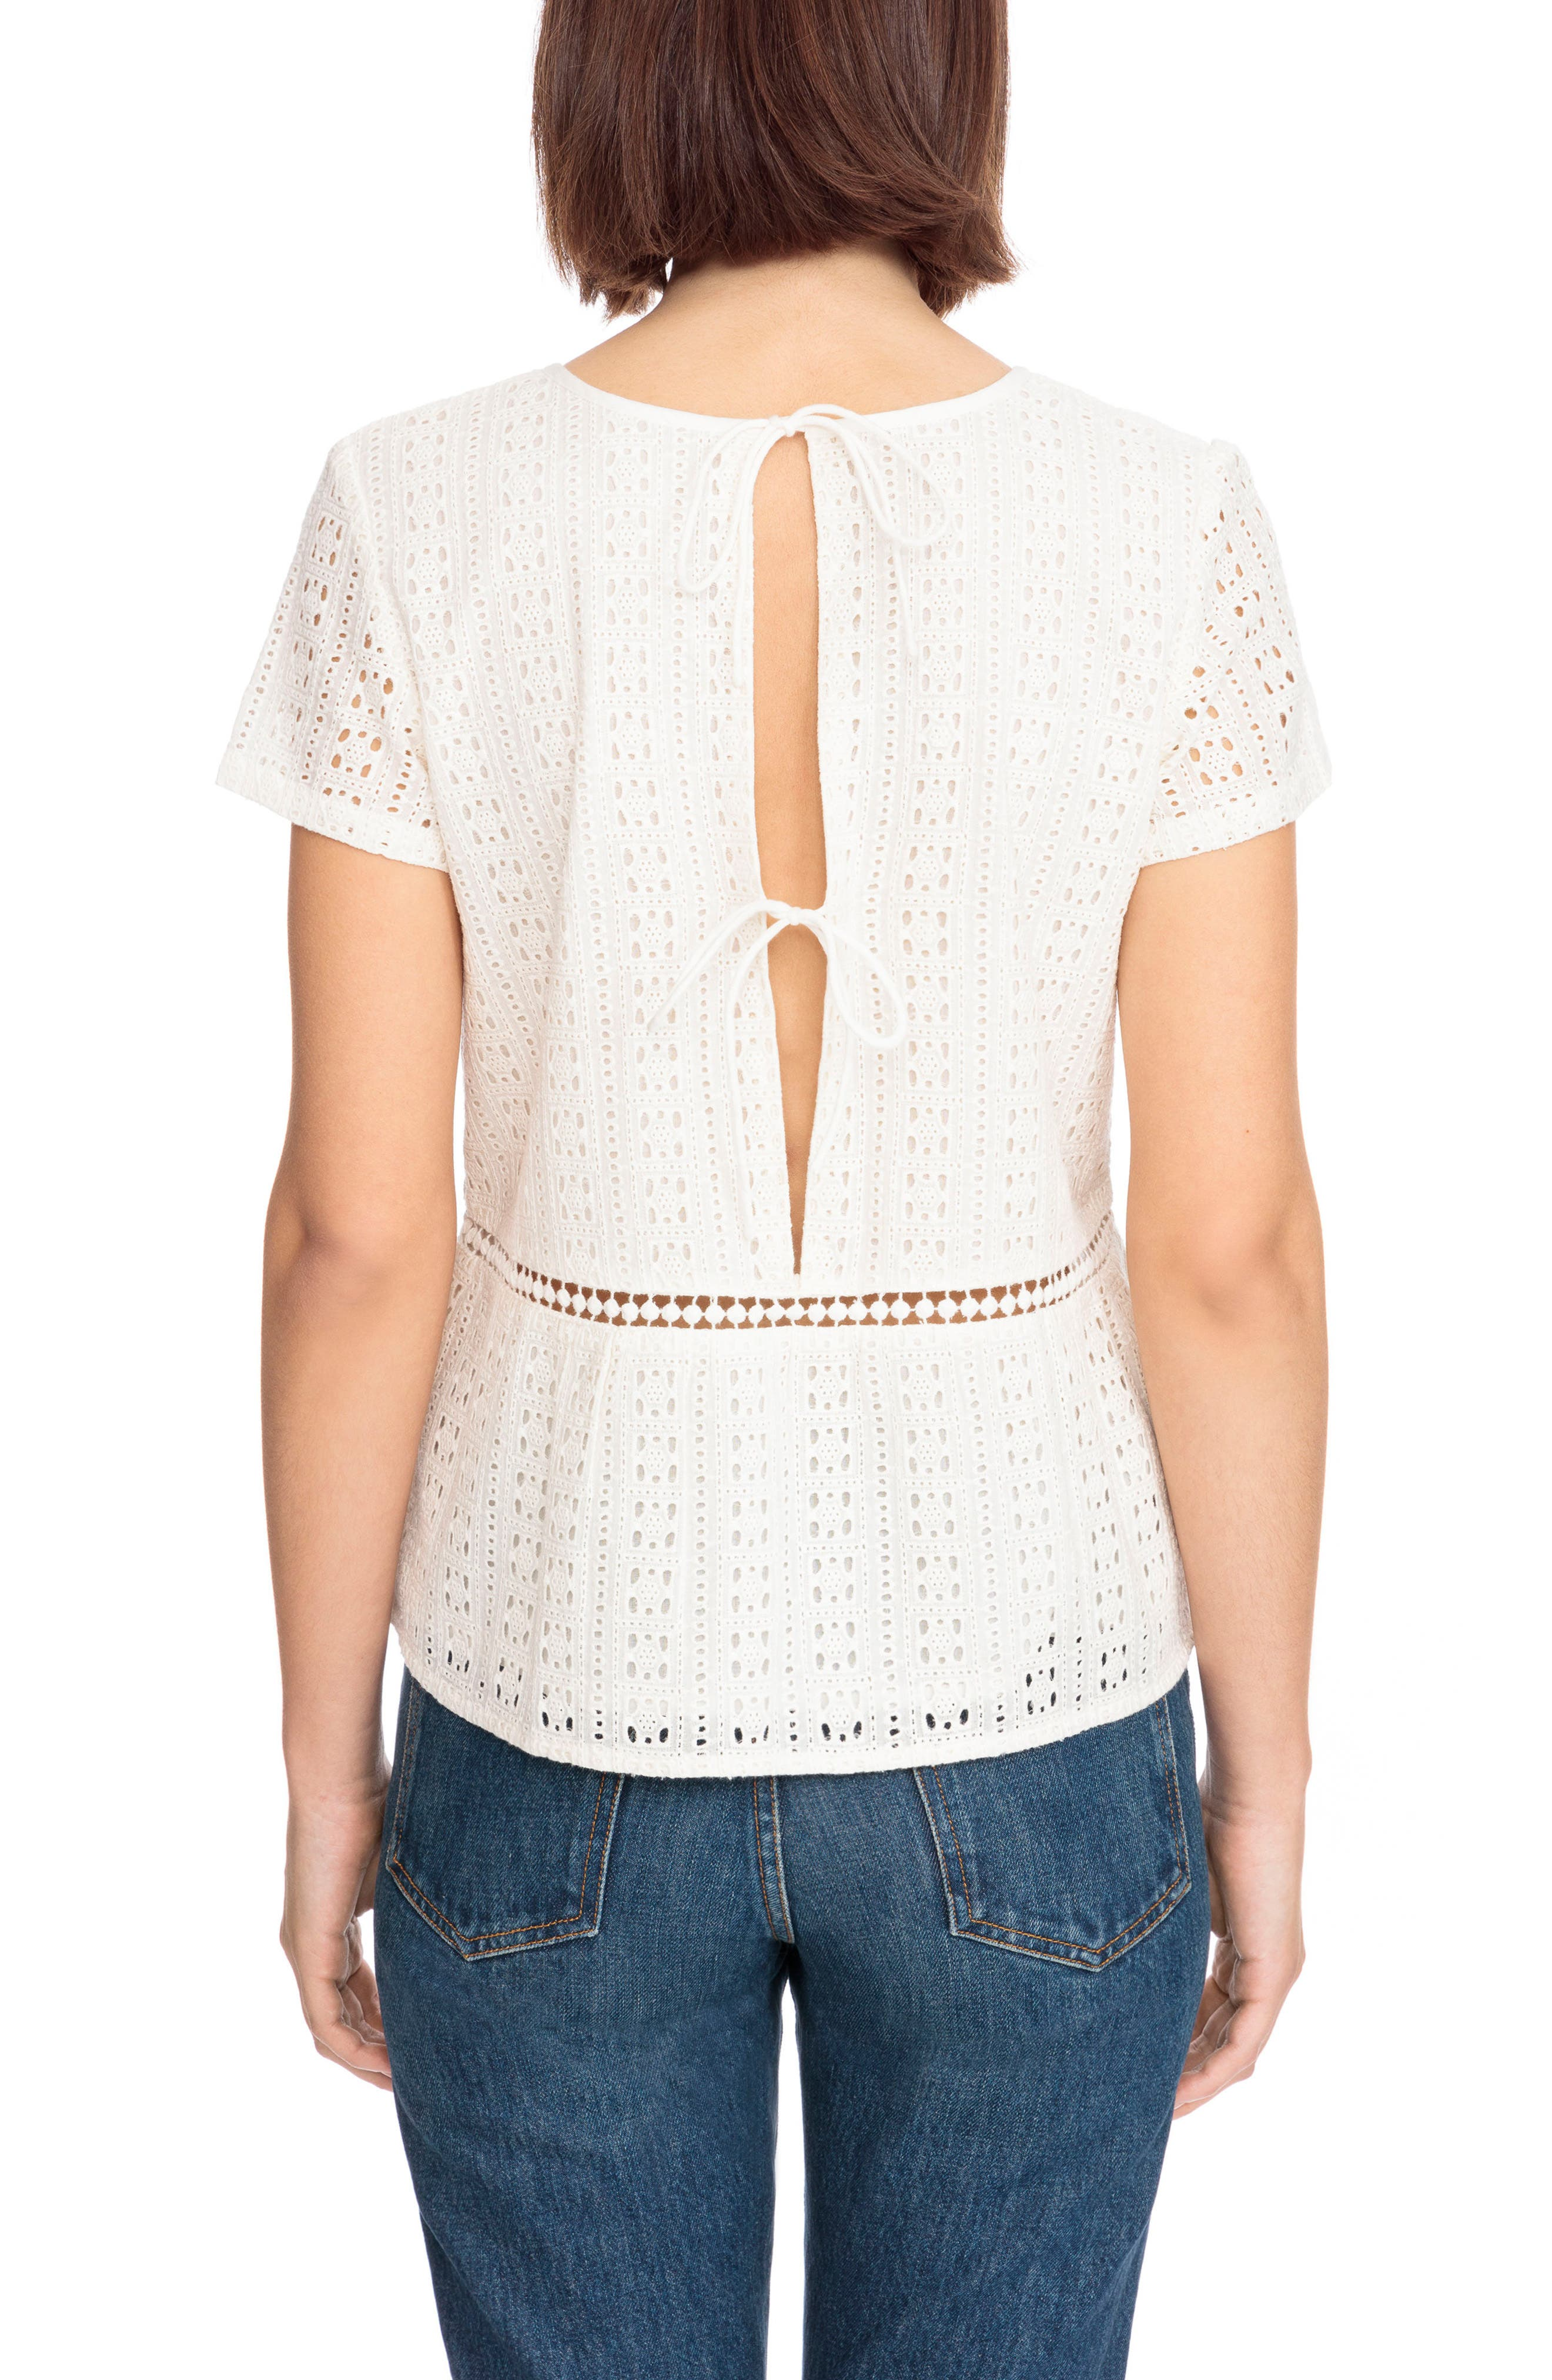 Clo Crochet Blouse,                             Alternate thumbnail 2, color,                             Off White